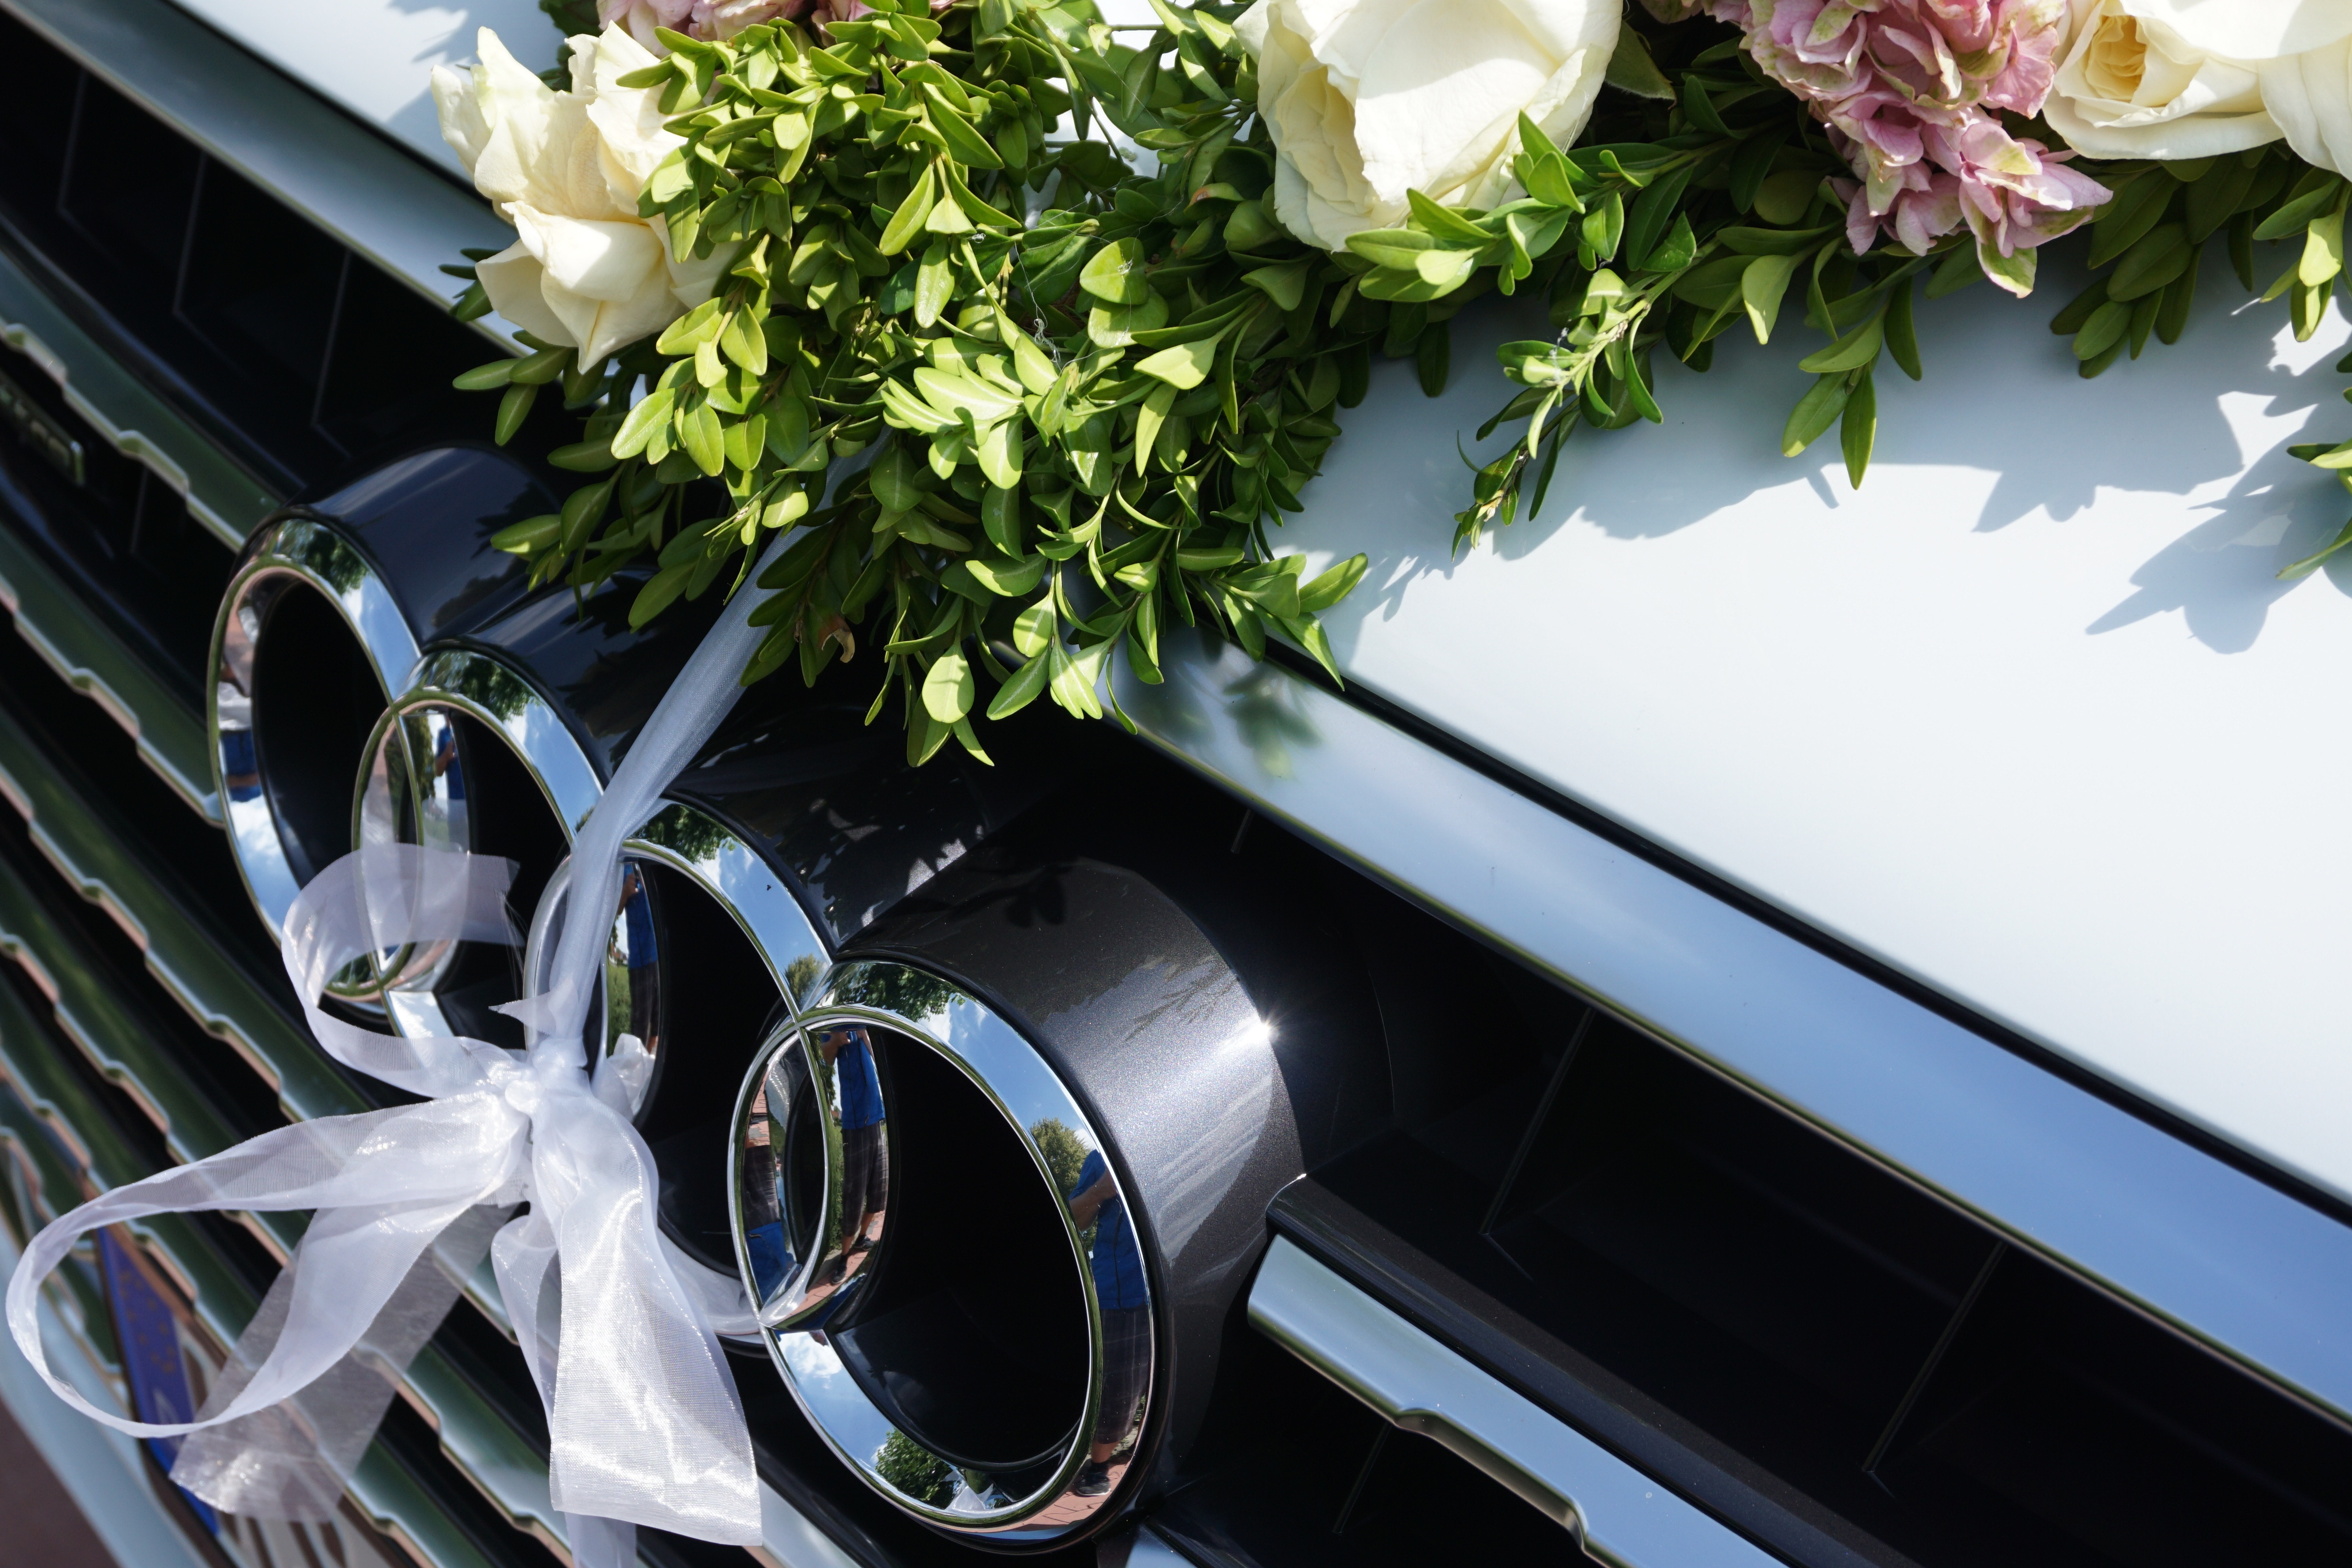 126502 download wallpaper Audi, Flowers, Cars, Suv, Logo, Logotype, Q7 screensavers and pictures for free